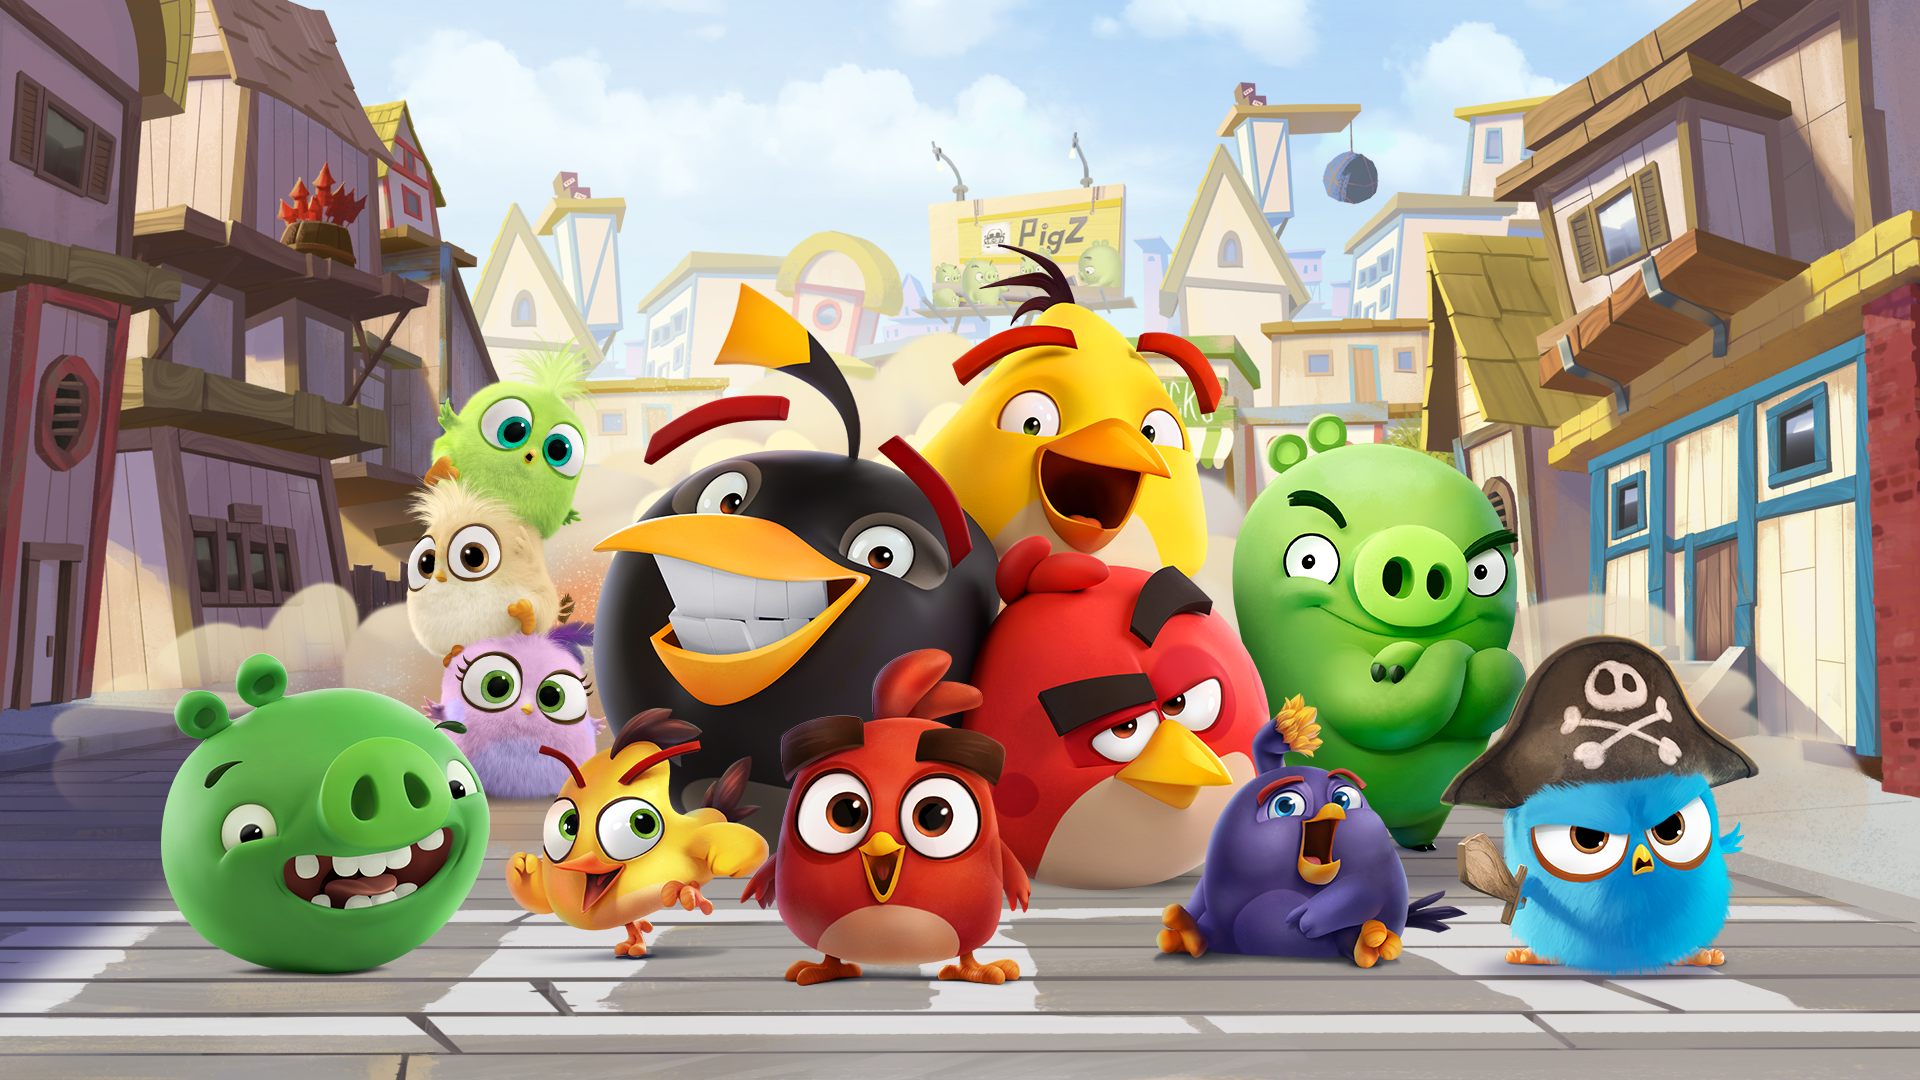 'Angry Birds' Owner Rovio Appoints IMG as Licensing Agent